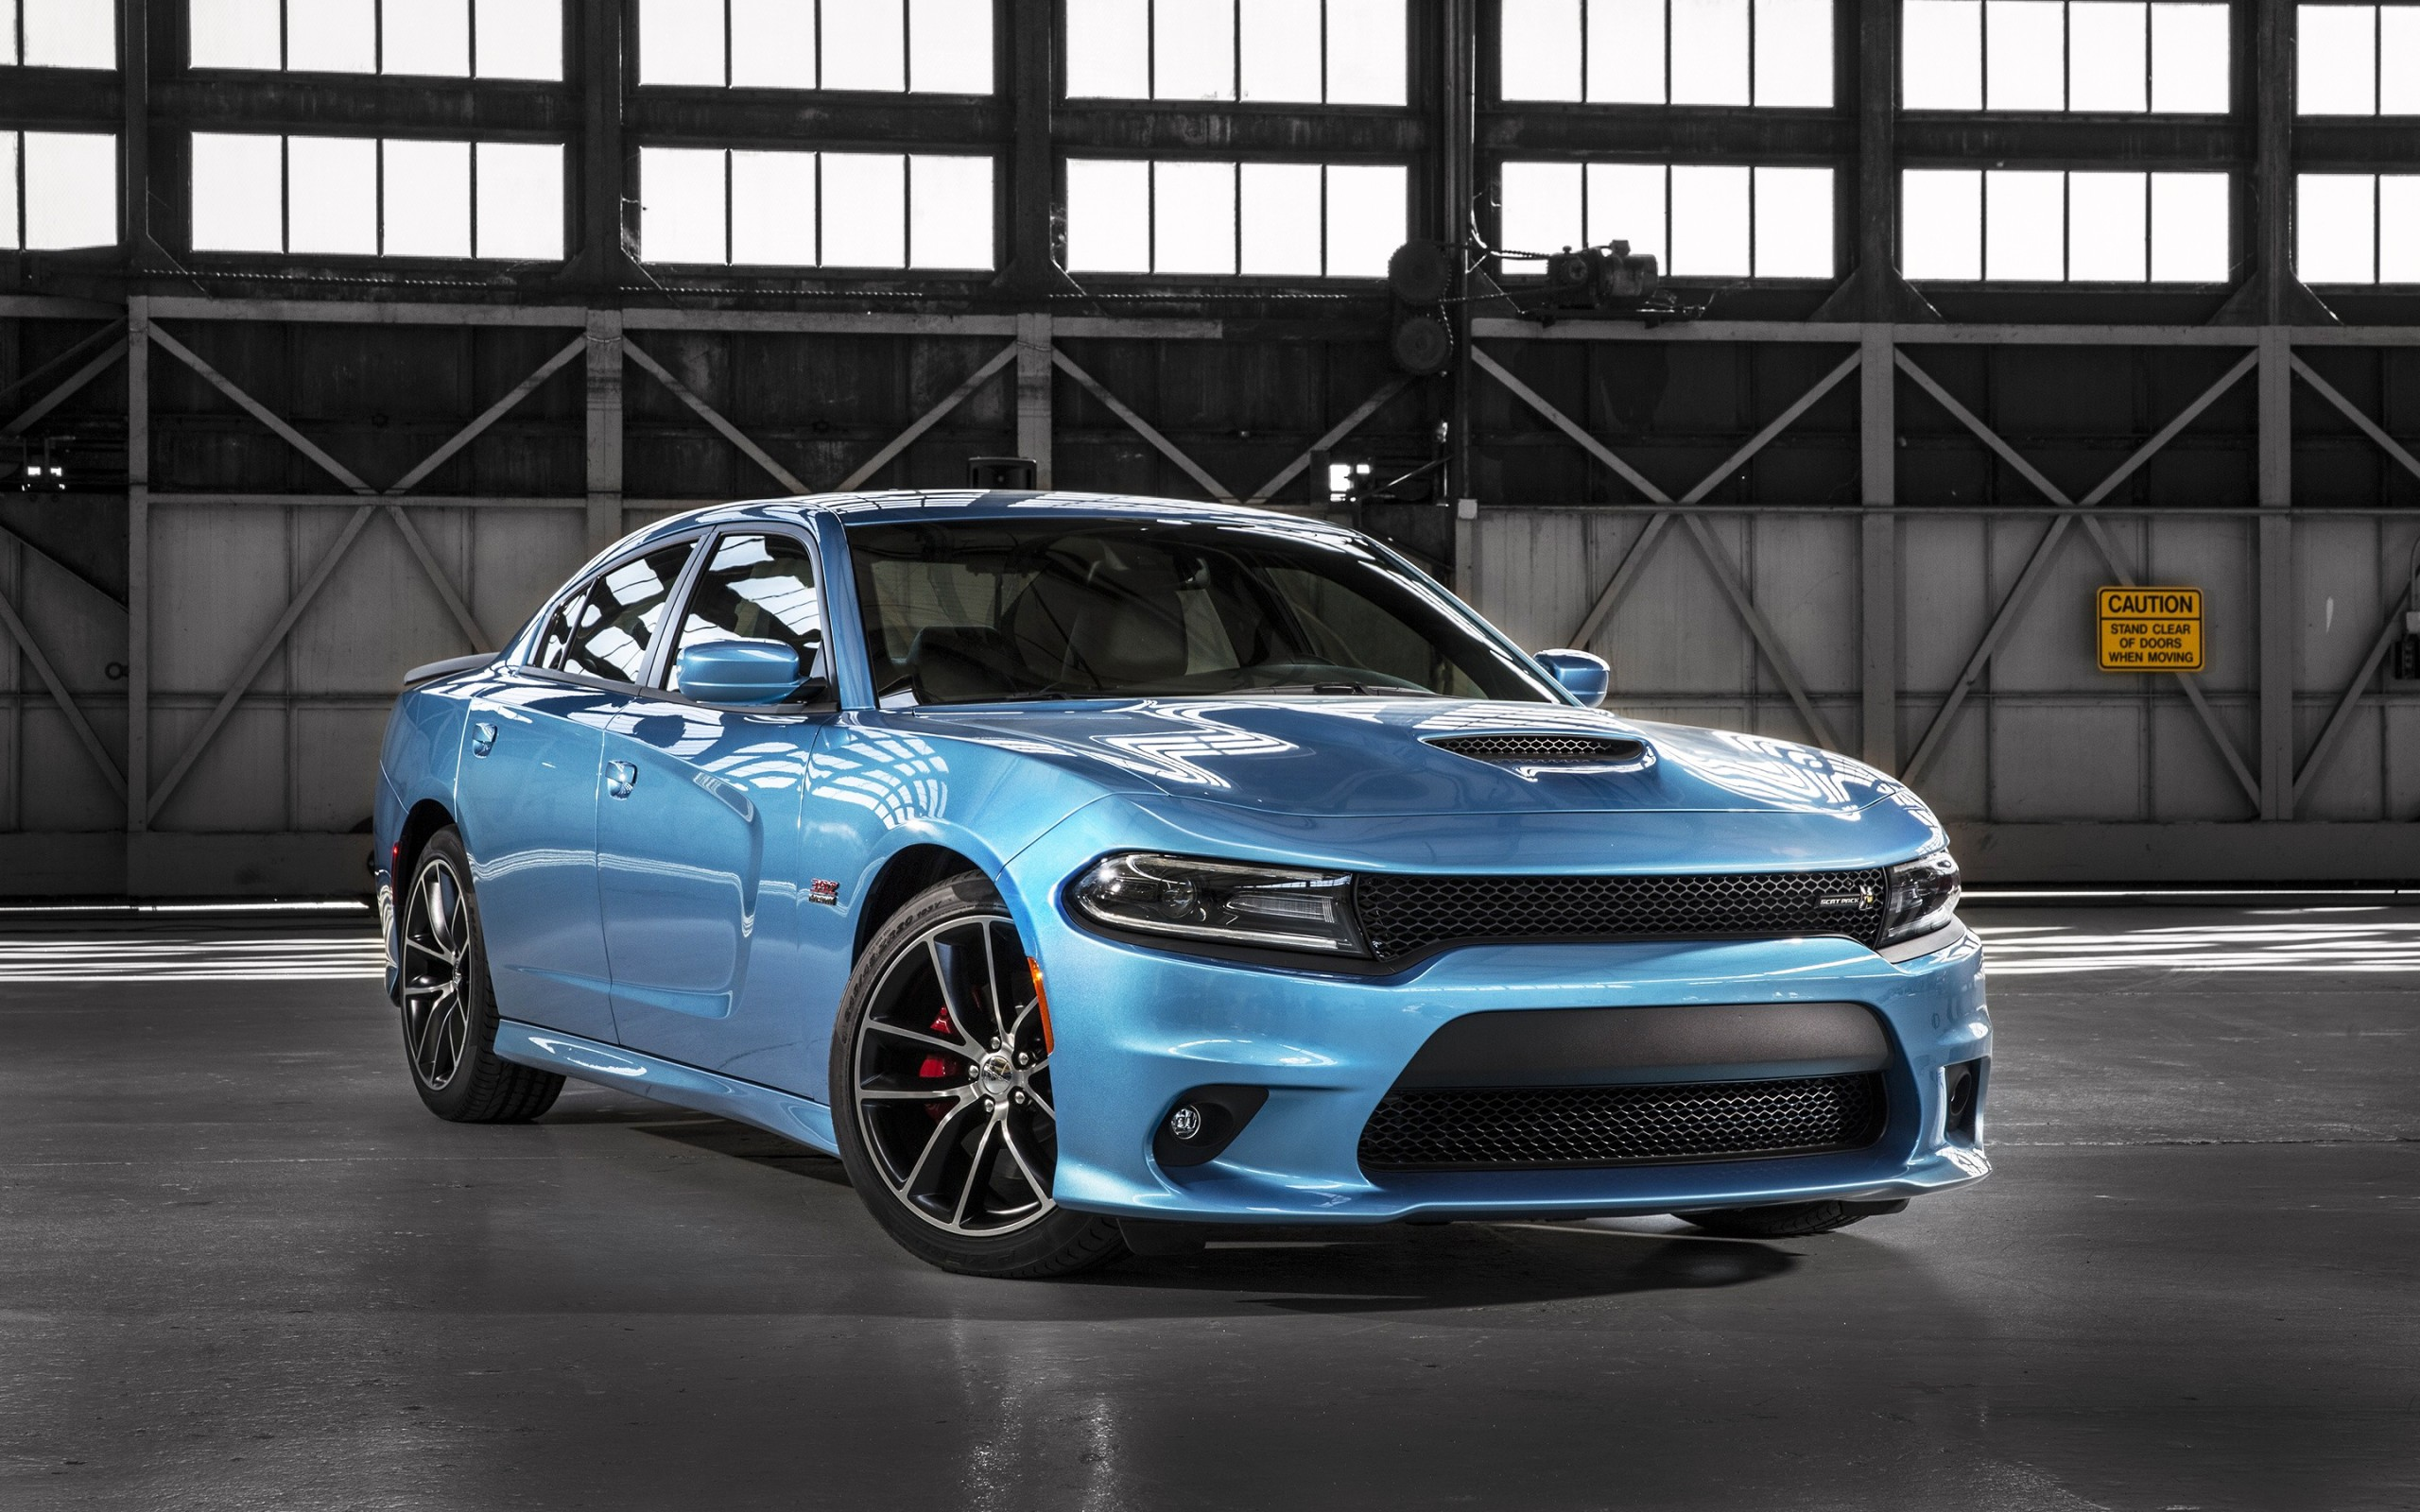 2015 Dodge Charger Rt Scat Pack Wallpaper Hd Car Wallpapers Id 4914